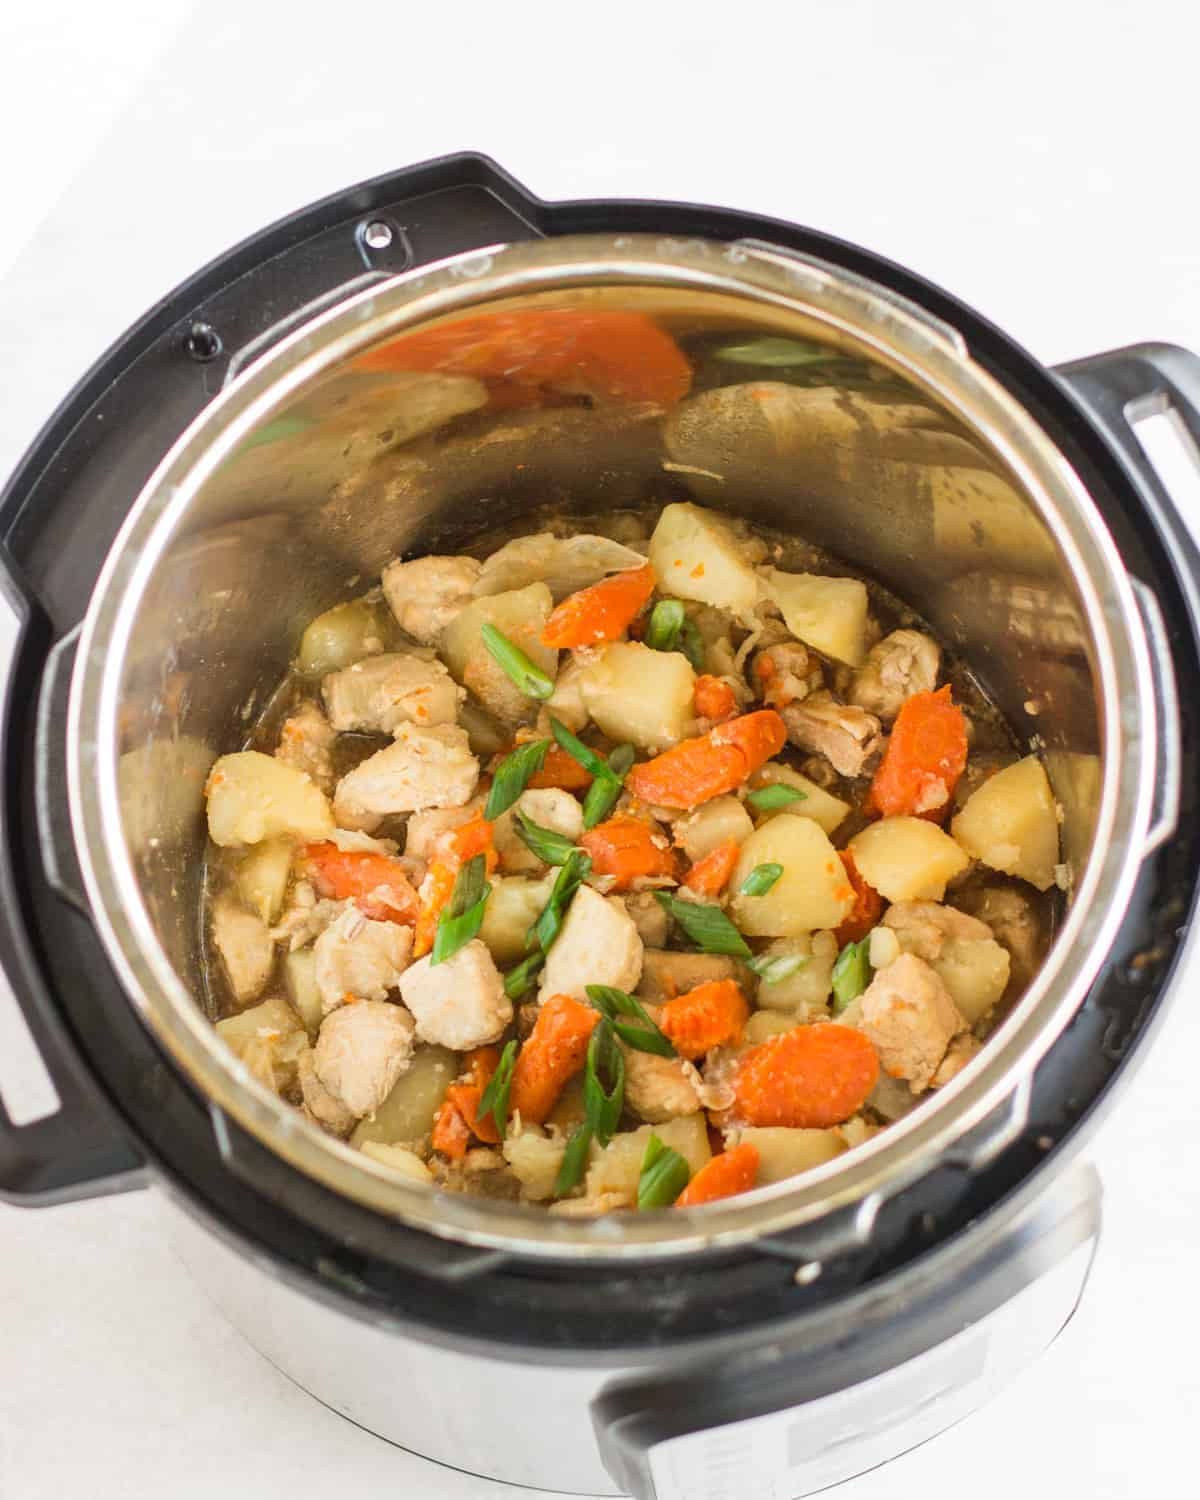 cooked chicken, carrots, potatoes with green onion inside an instant pot